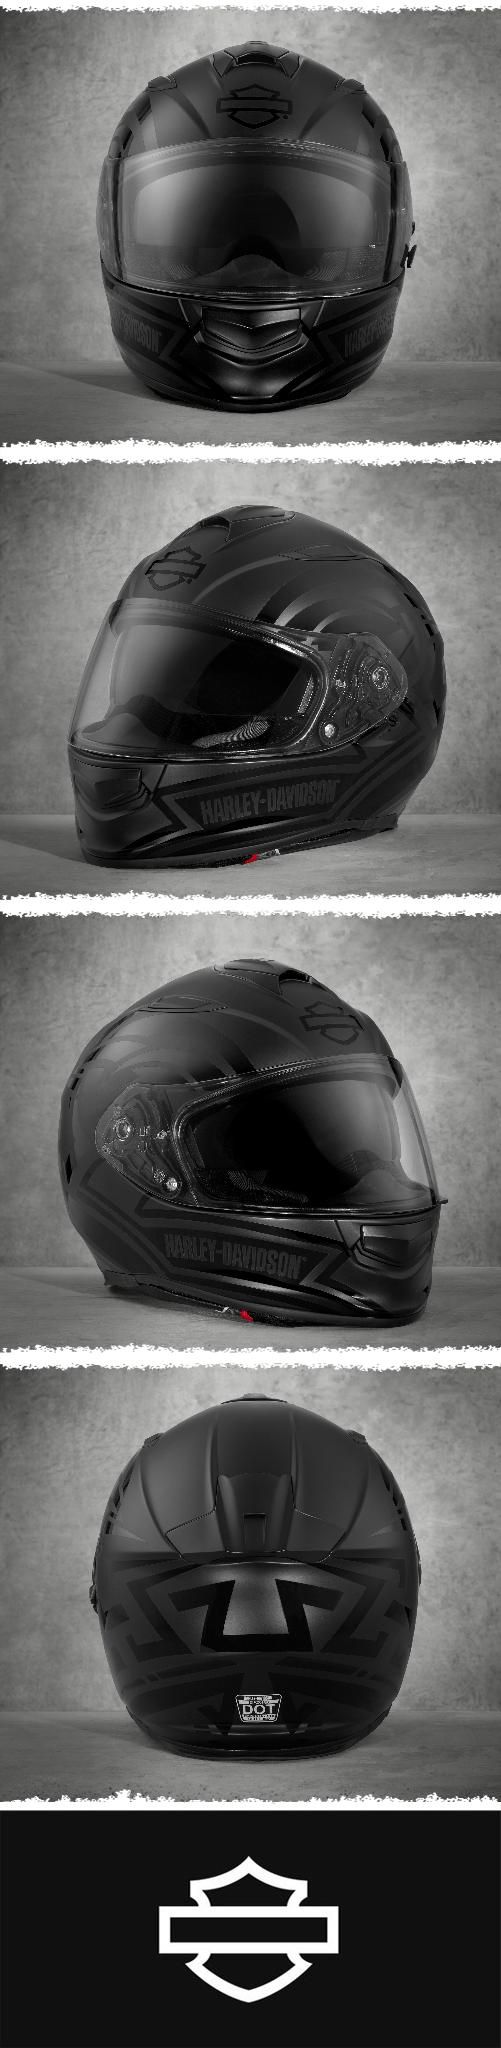 c1f8d0018 Frill Airfit Sun Shield X03 Full-Face Helmet   Protect What Matters ...